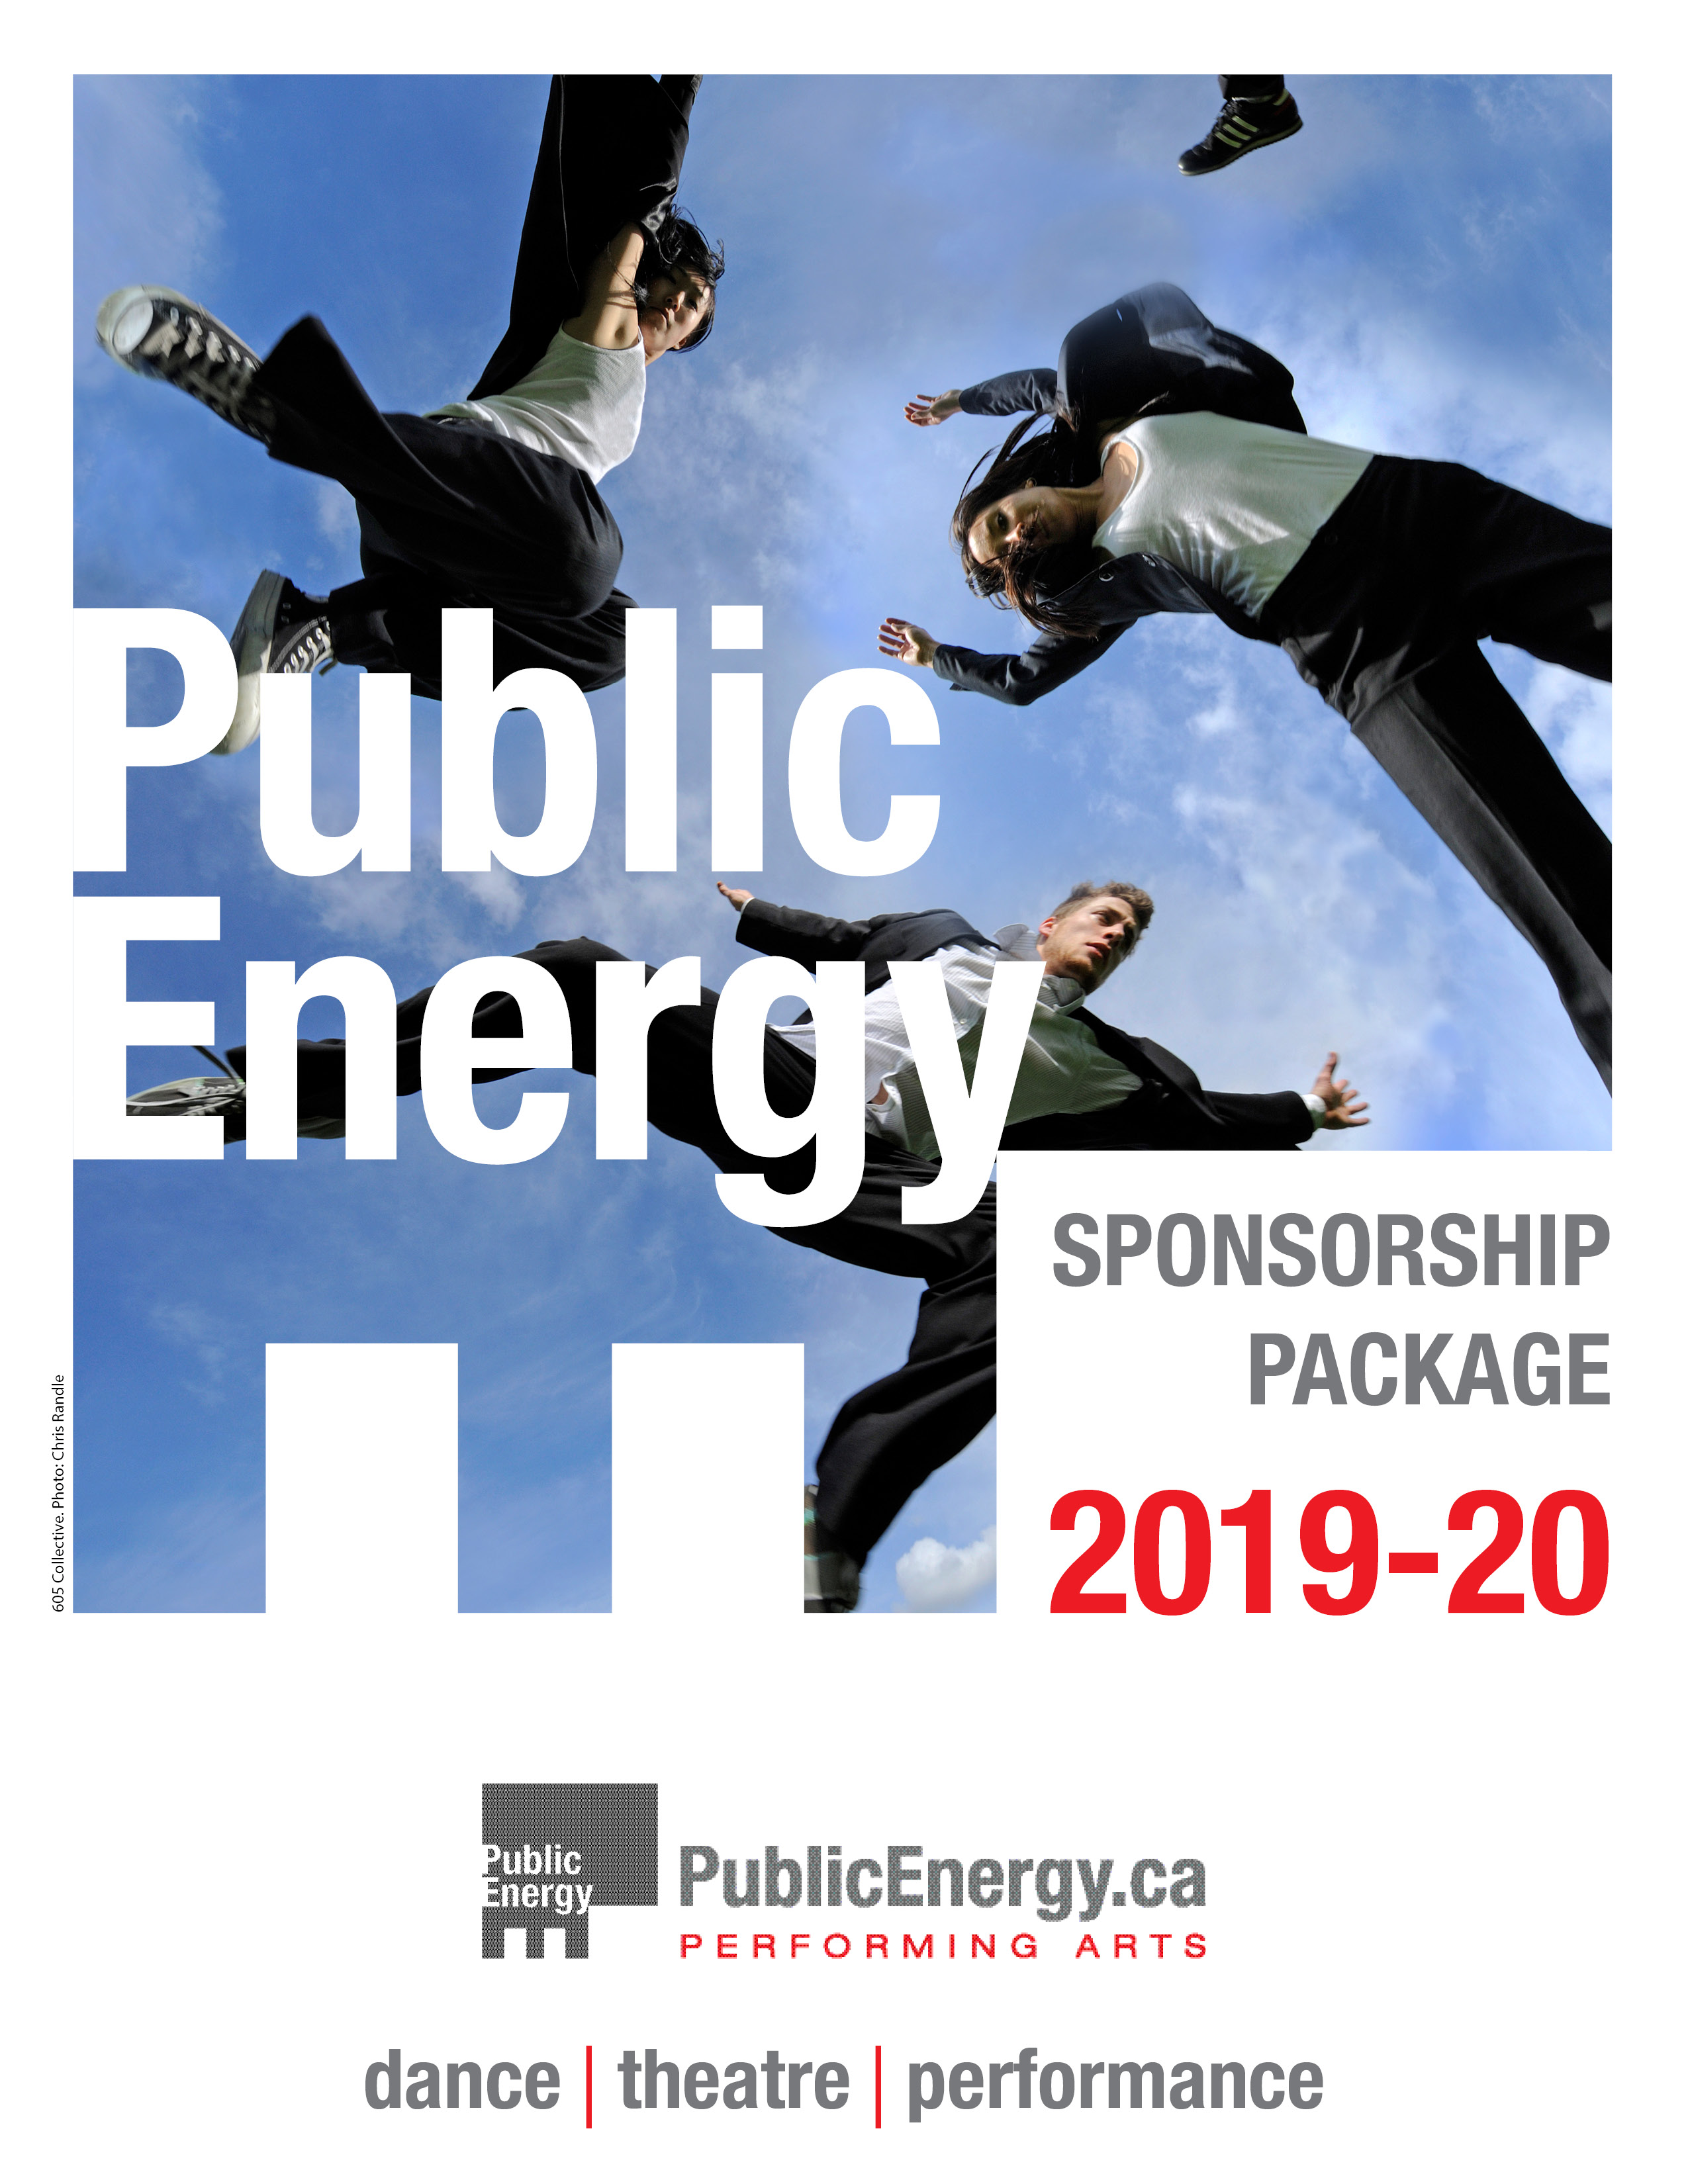 Public Energy sponsorship package PDF. There is an image of people jumping into the air in front of a blue sky.